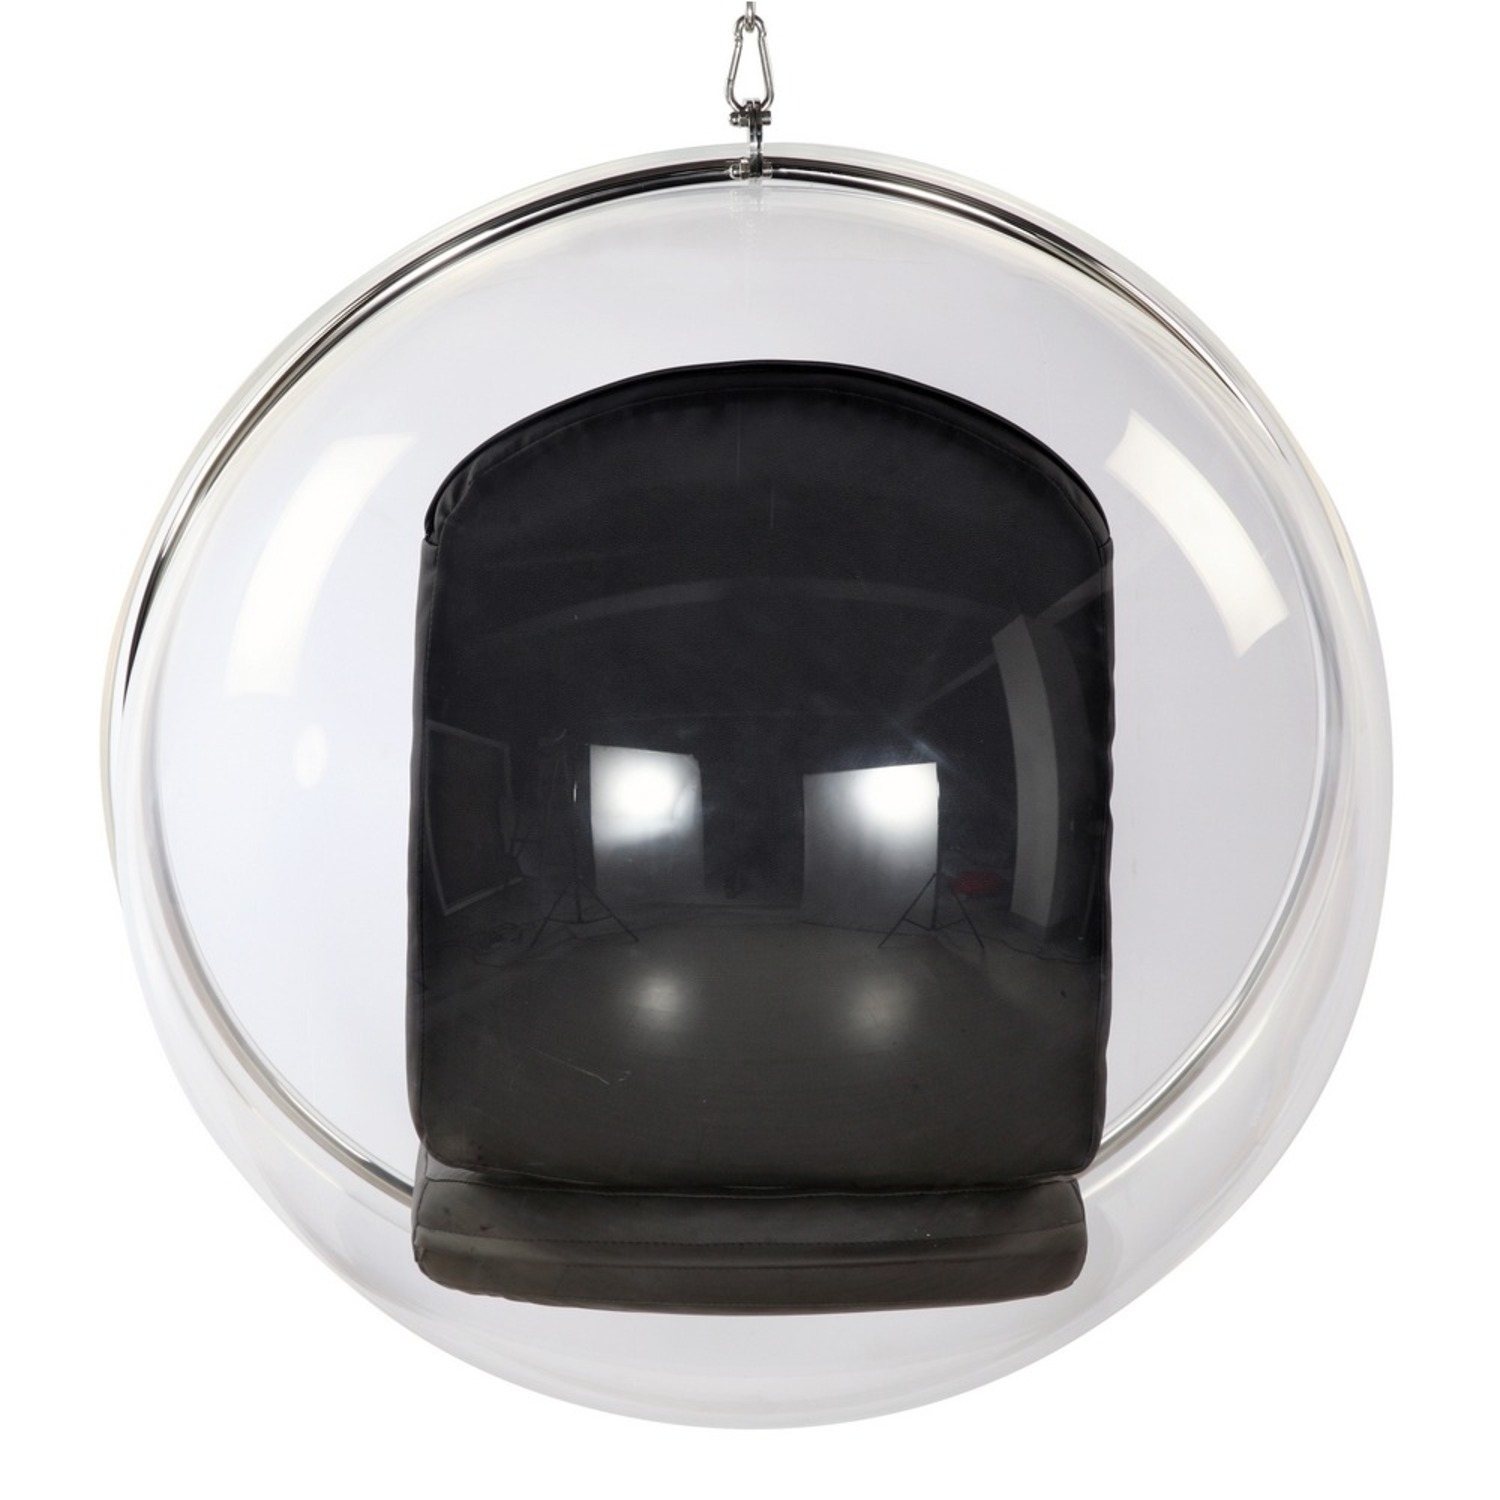 Hanging Chair In Clear Acrylic & Black PU Leather - image-2